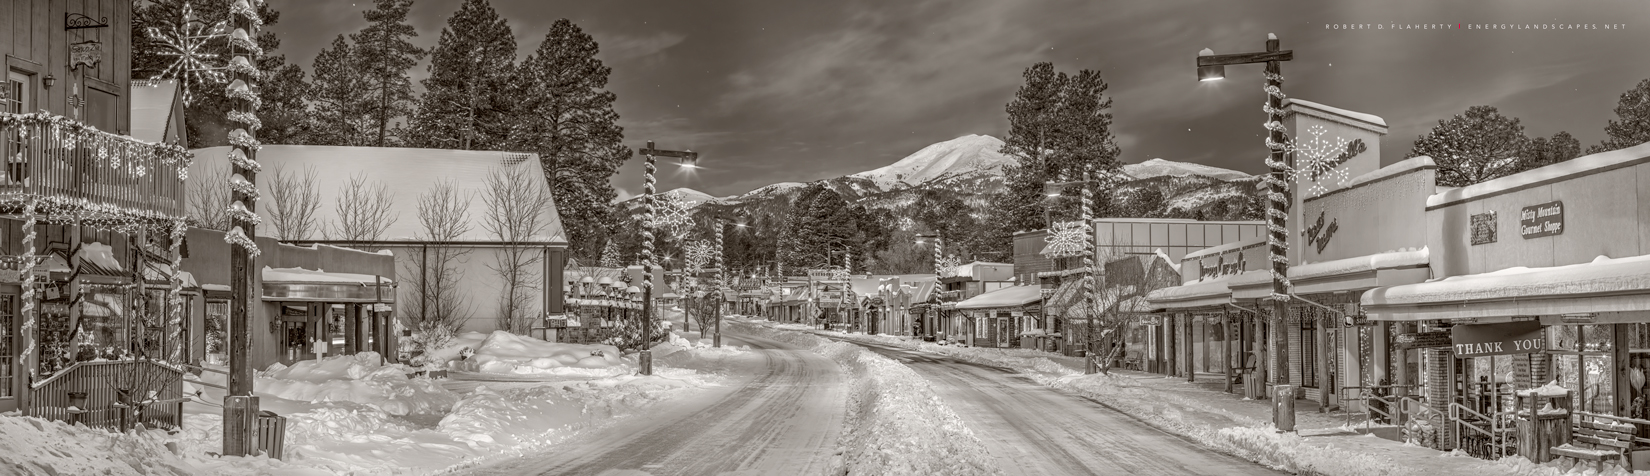 photography, Midtown Ruidoso, panorama, high resolution, night, large format, New Mexico, Northern New Mexico, Southern New Mexico, Central Mountains, Sierra Blanca, Energylandscapes At Topside Galler, photo